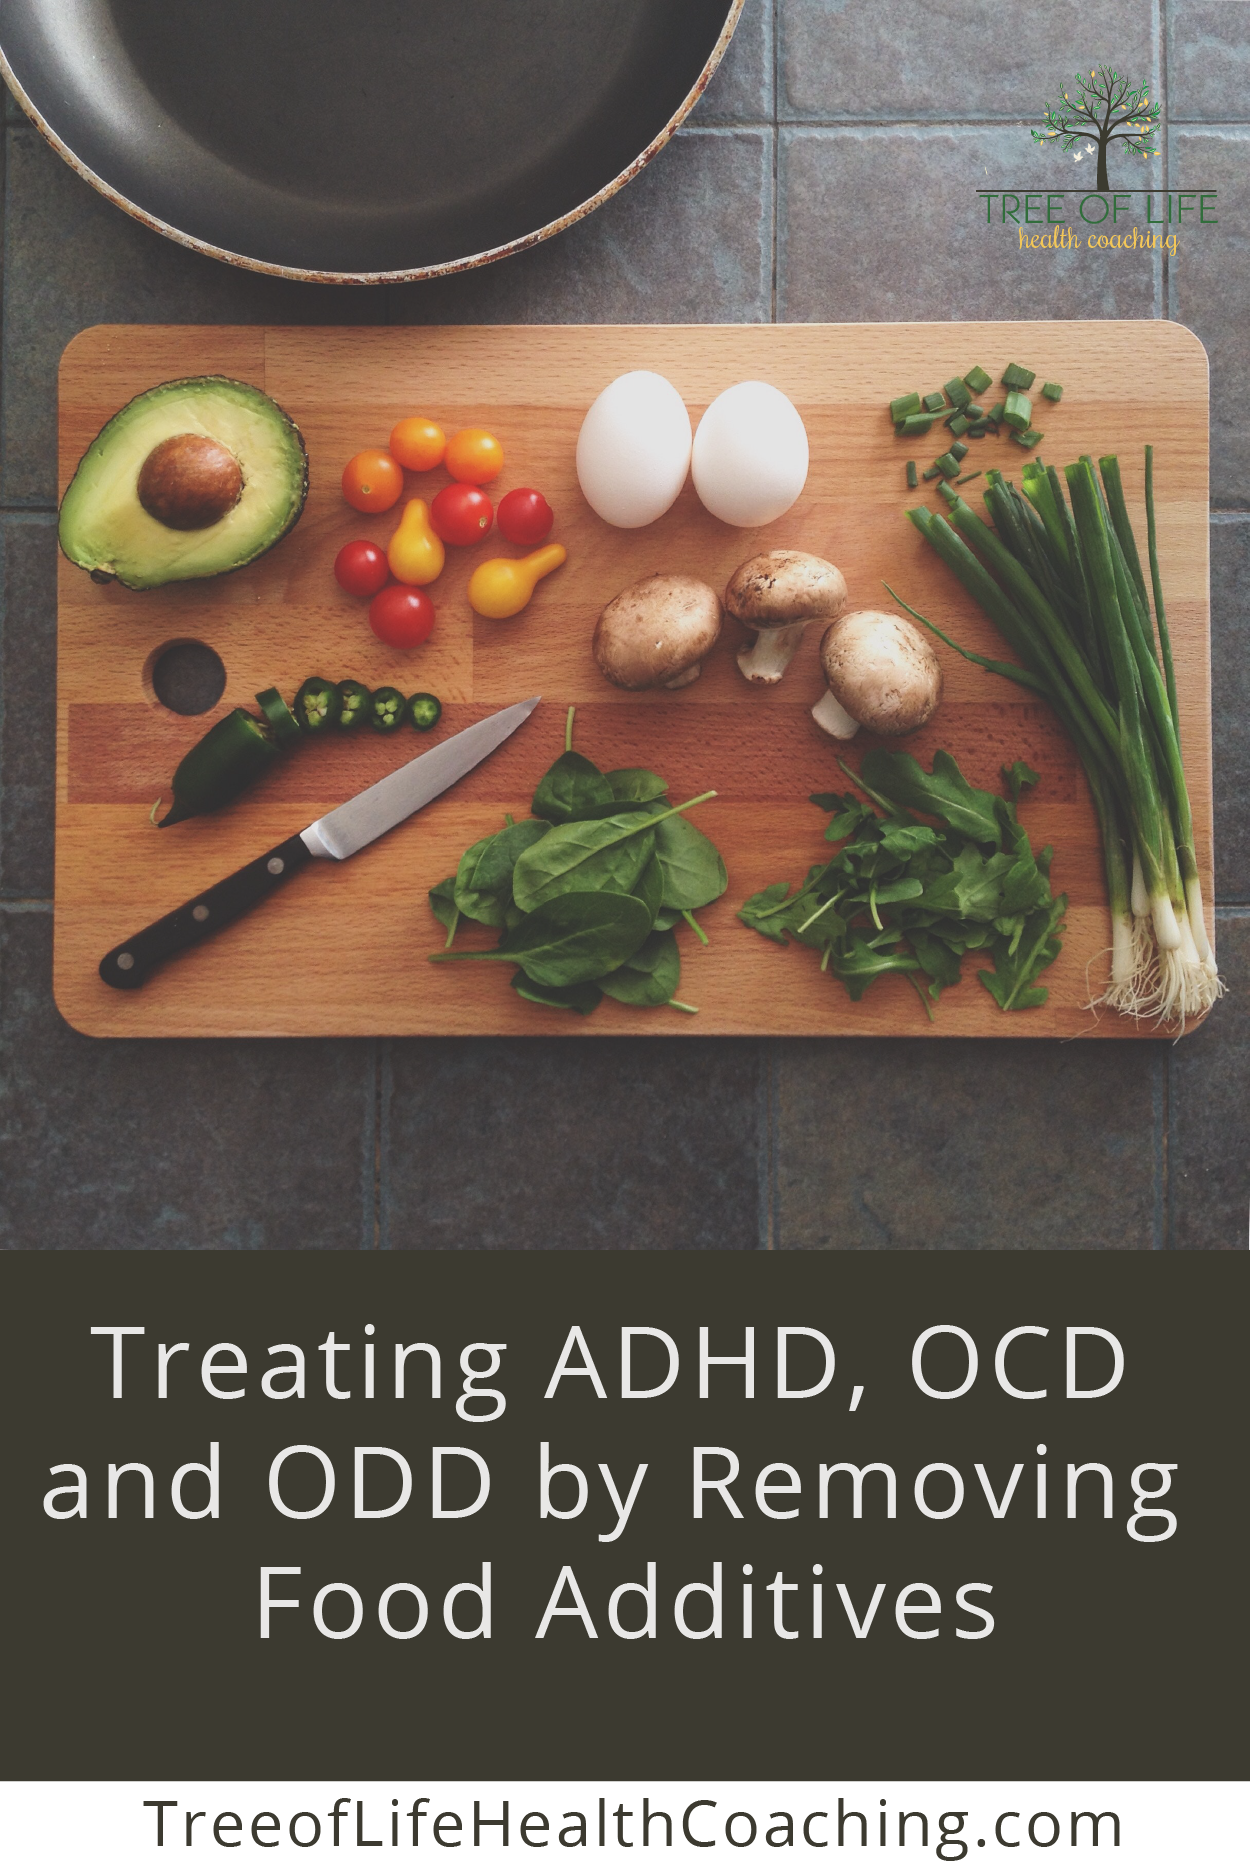 Treating ADHD, OCD and ODD by Removing Food Additives